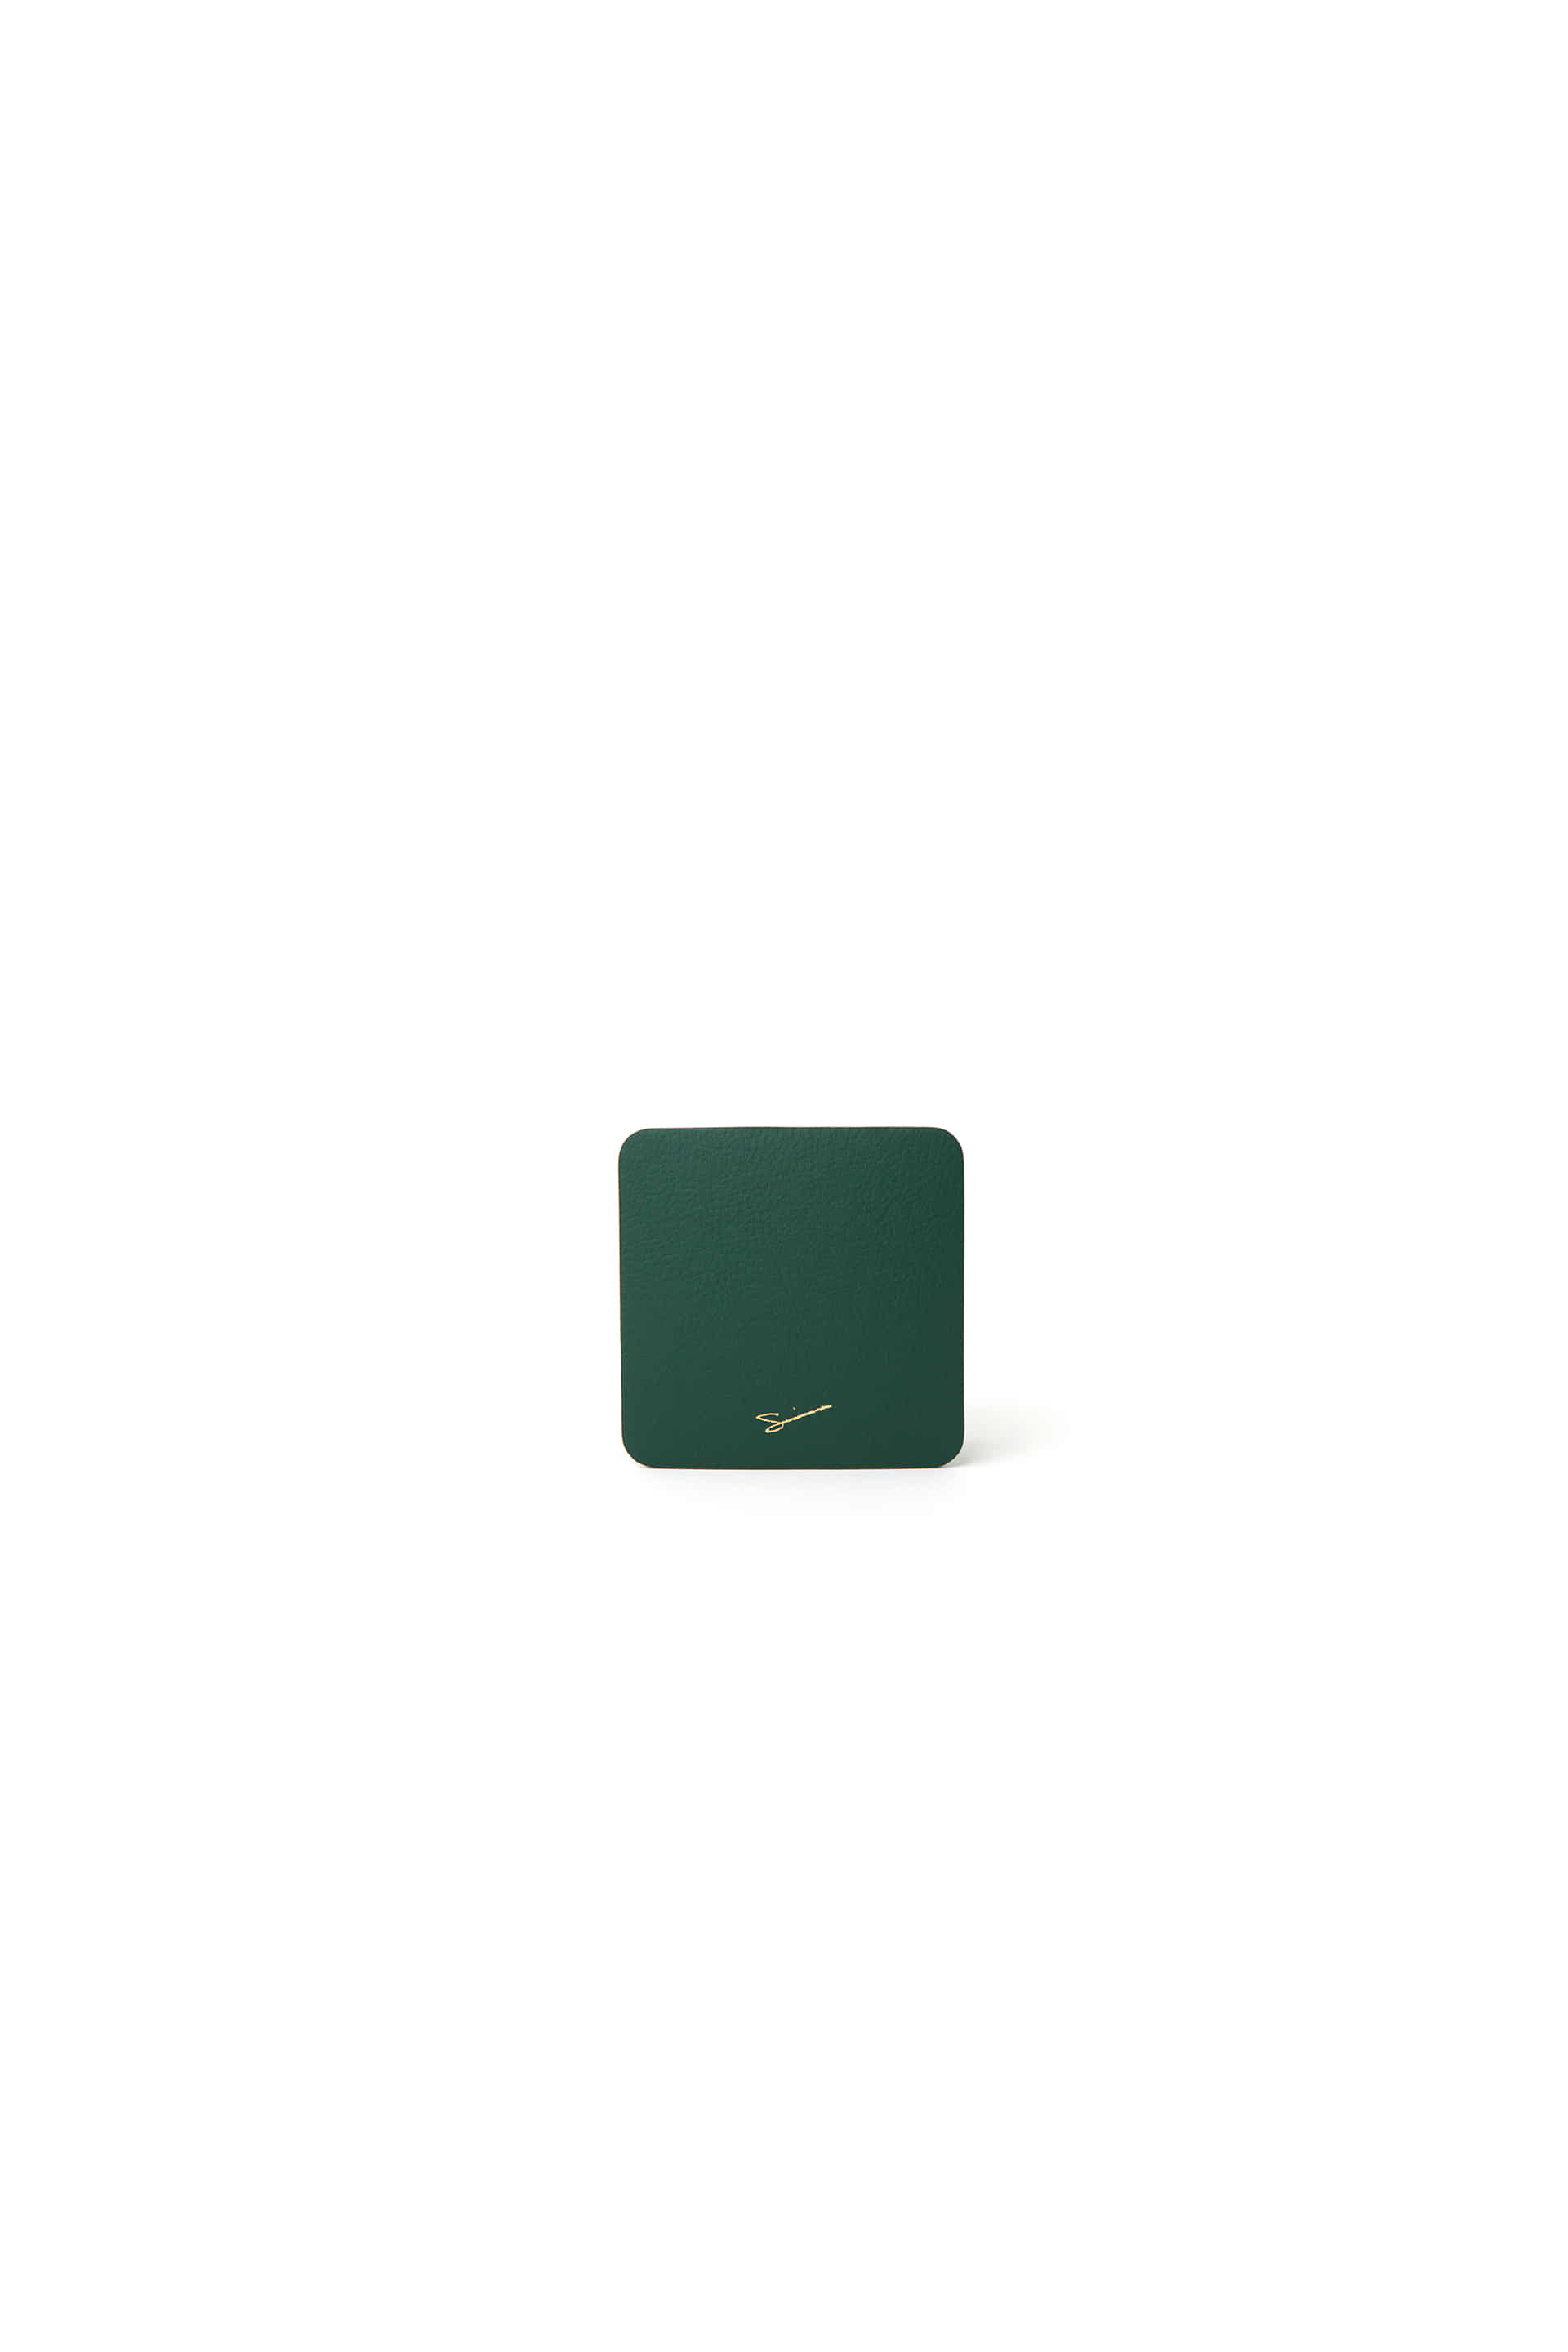 CUP PAD(2pcs) 12 Deep Green